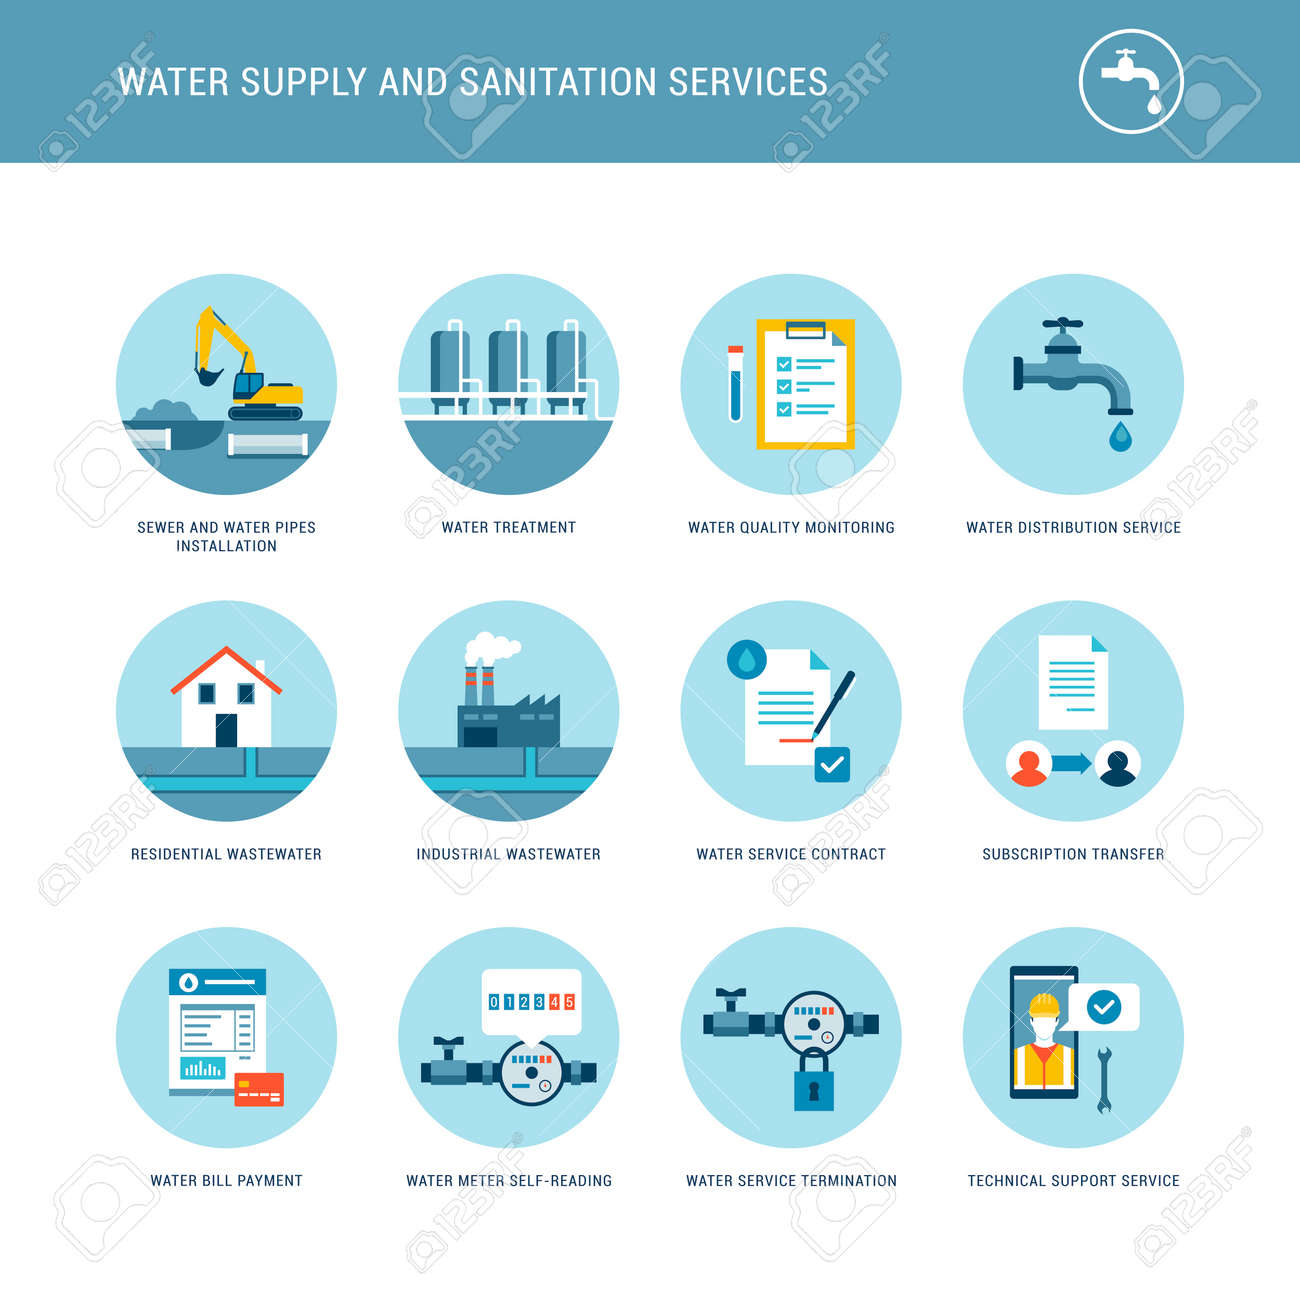 Water supply and sanitation services icons set: water treatment, distribution and collection service provider - 171662115